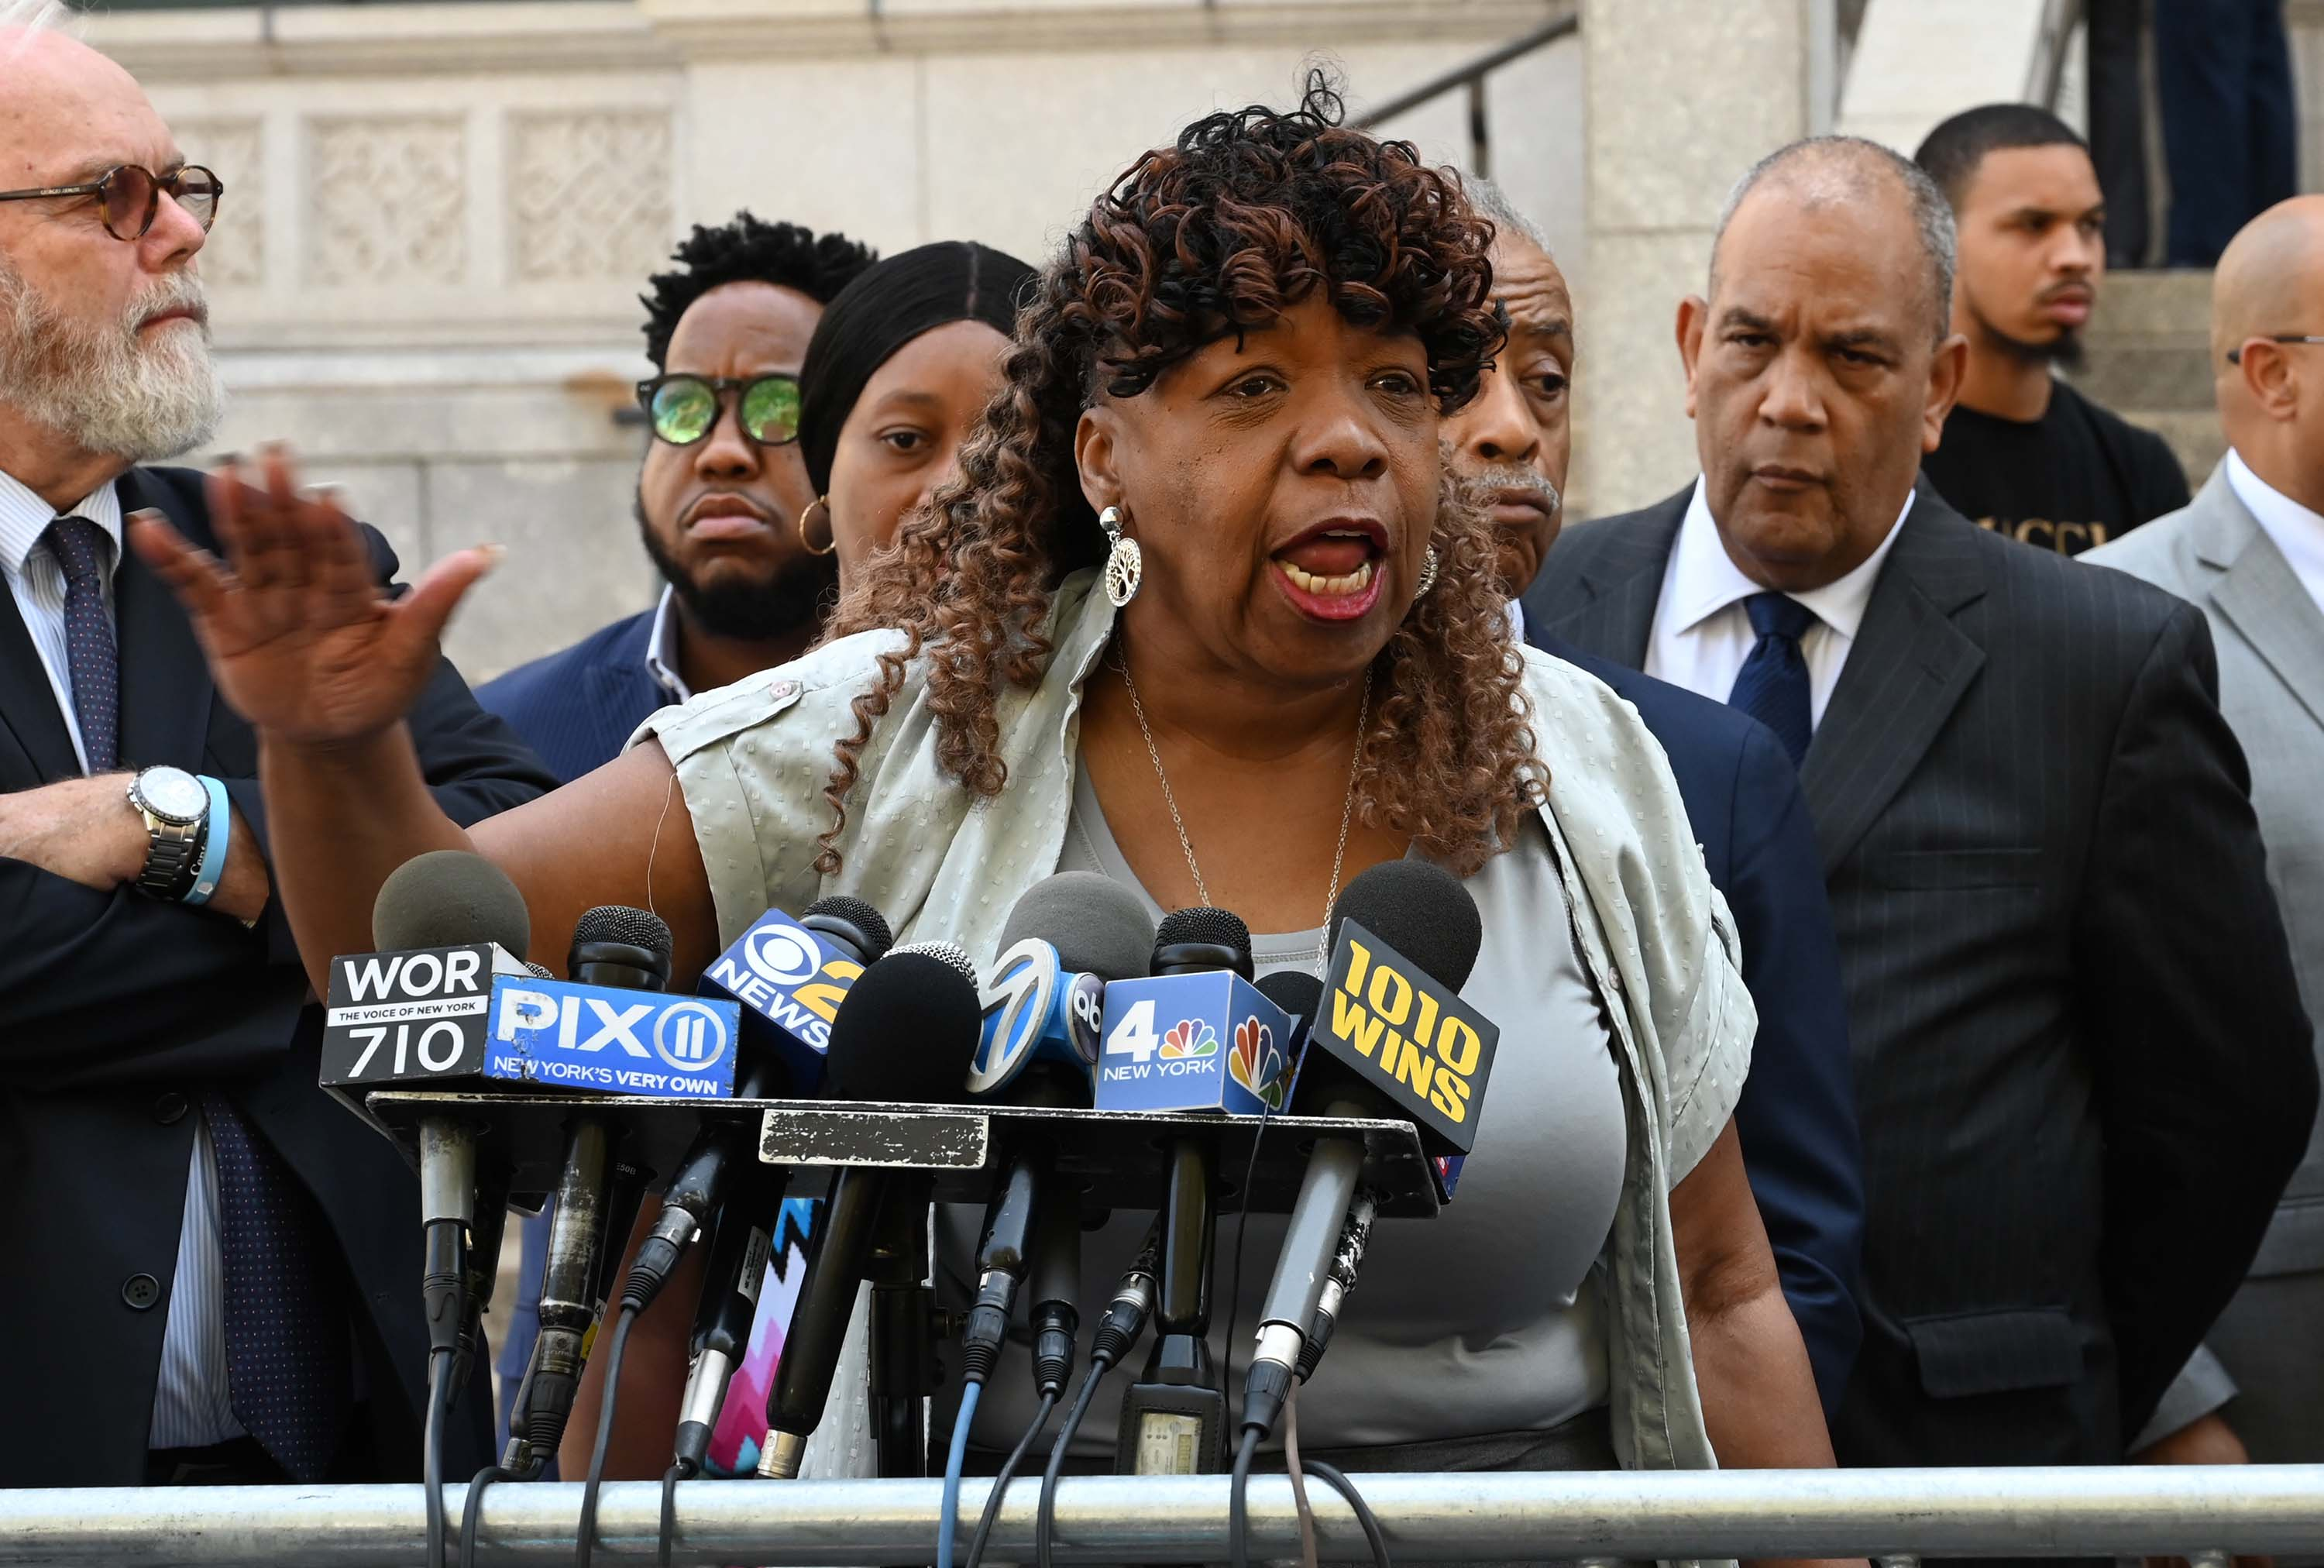 New York judge orders judicial review of Eric Garner case